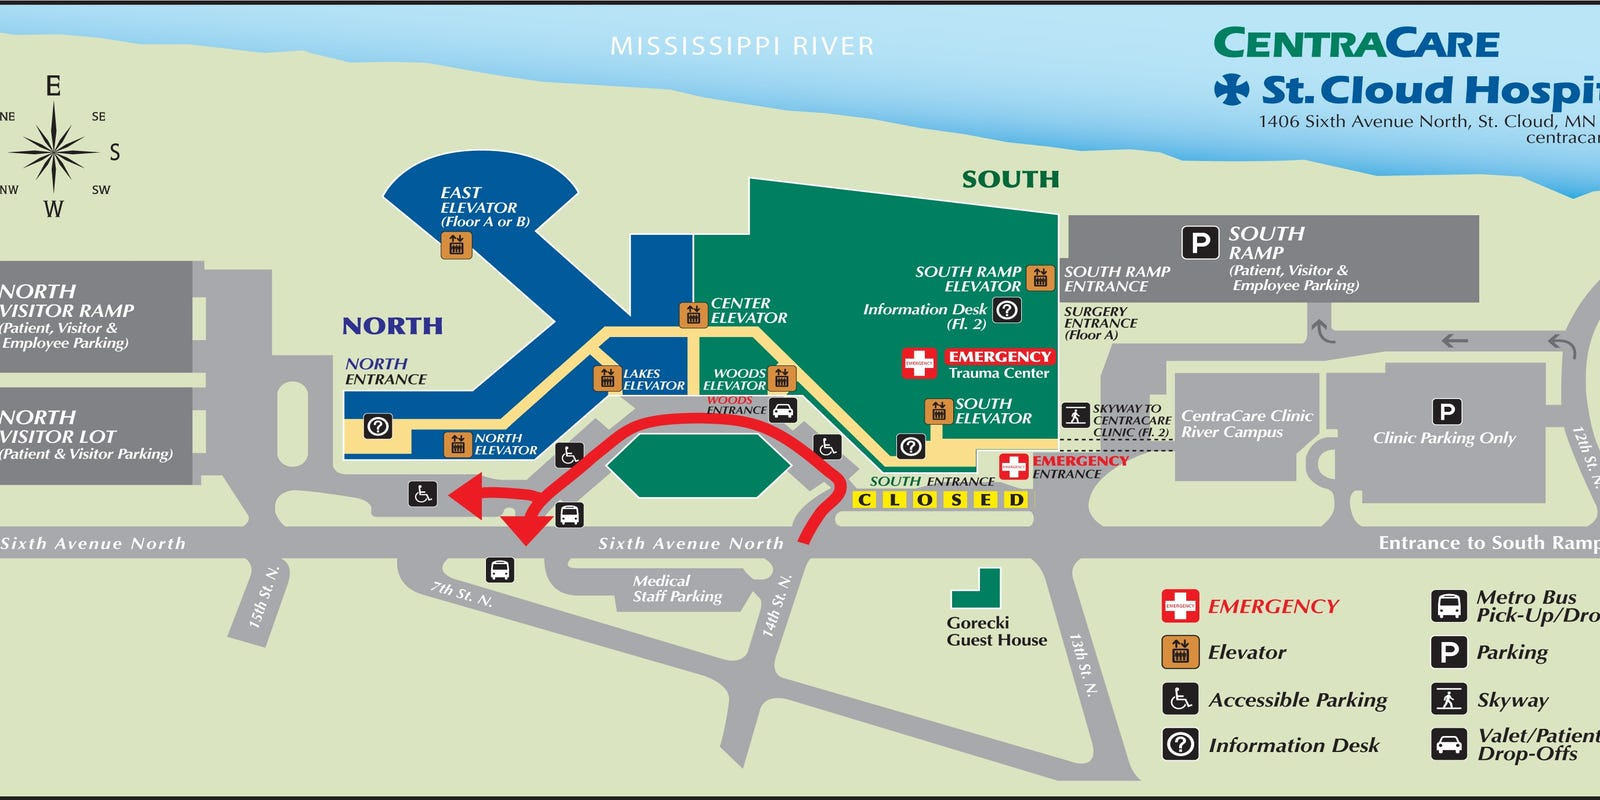 South entrance of hospital to close on st. cloud mn map, st. cloud state university map, saint cloud hospital map, cleveland hospital map, hennepin county medical center map,